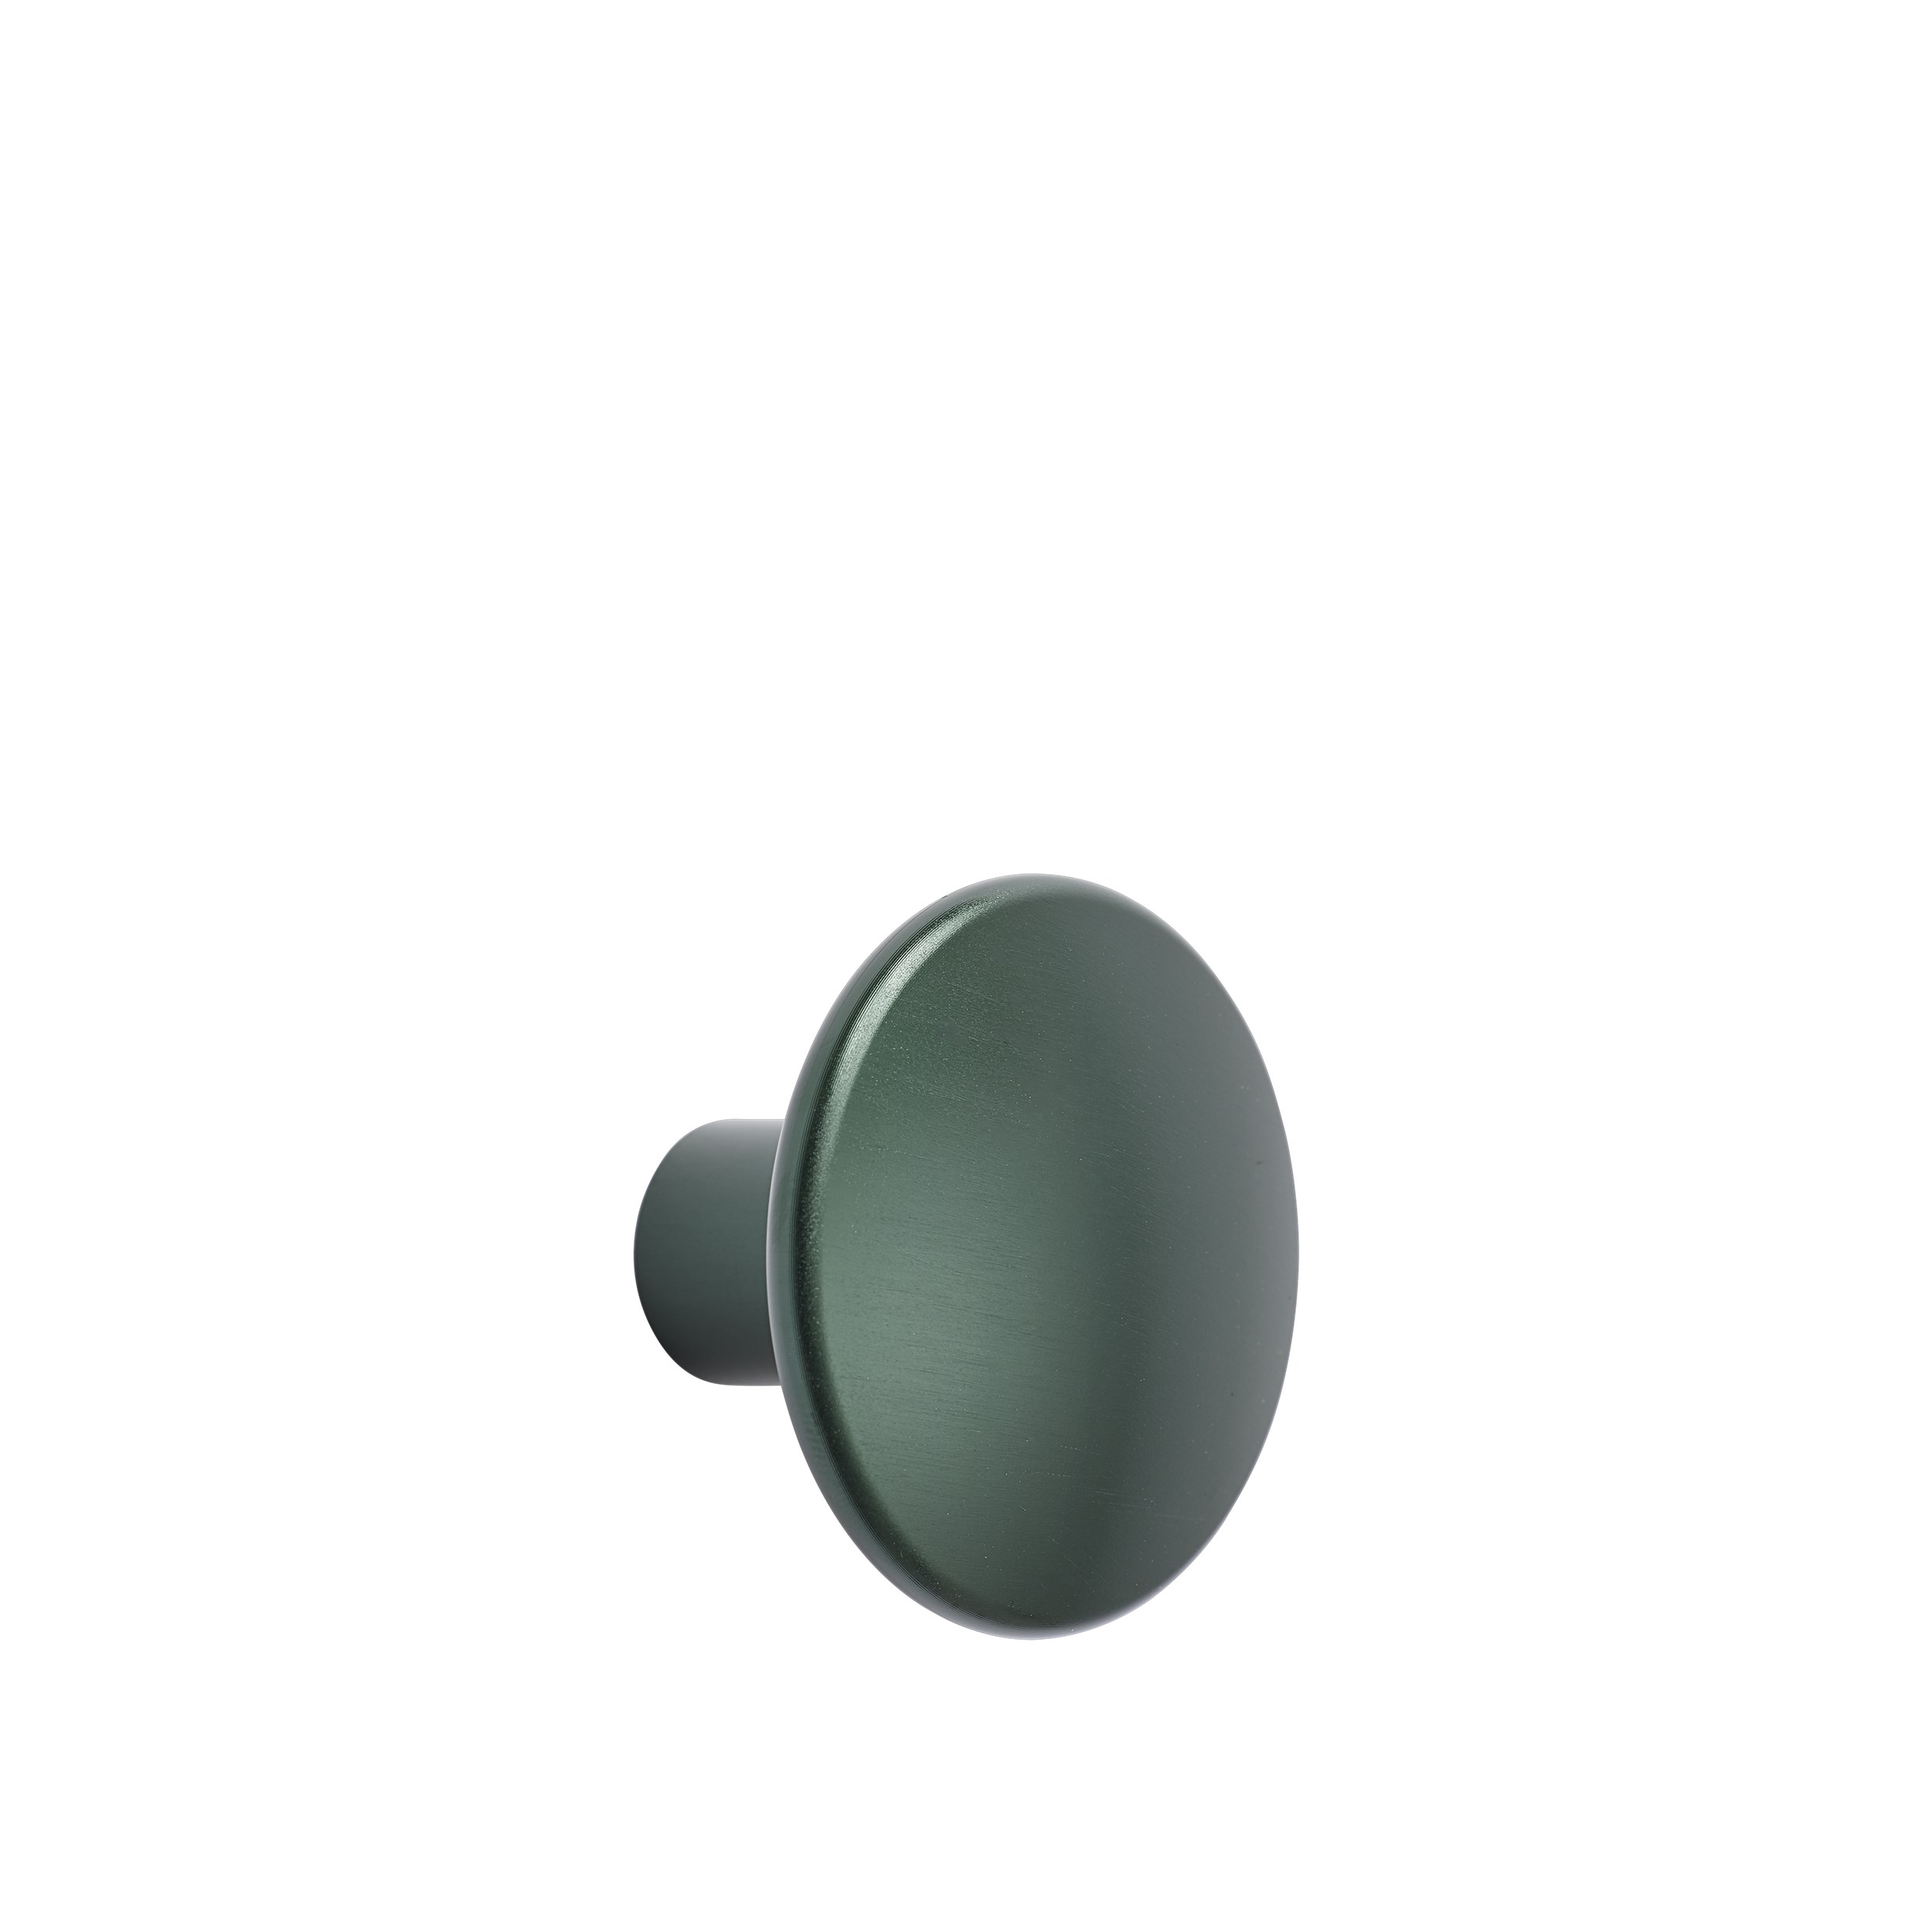 Dots metal large Ø 5 cm dark green